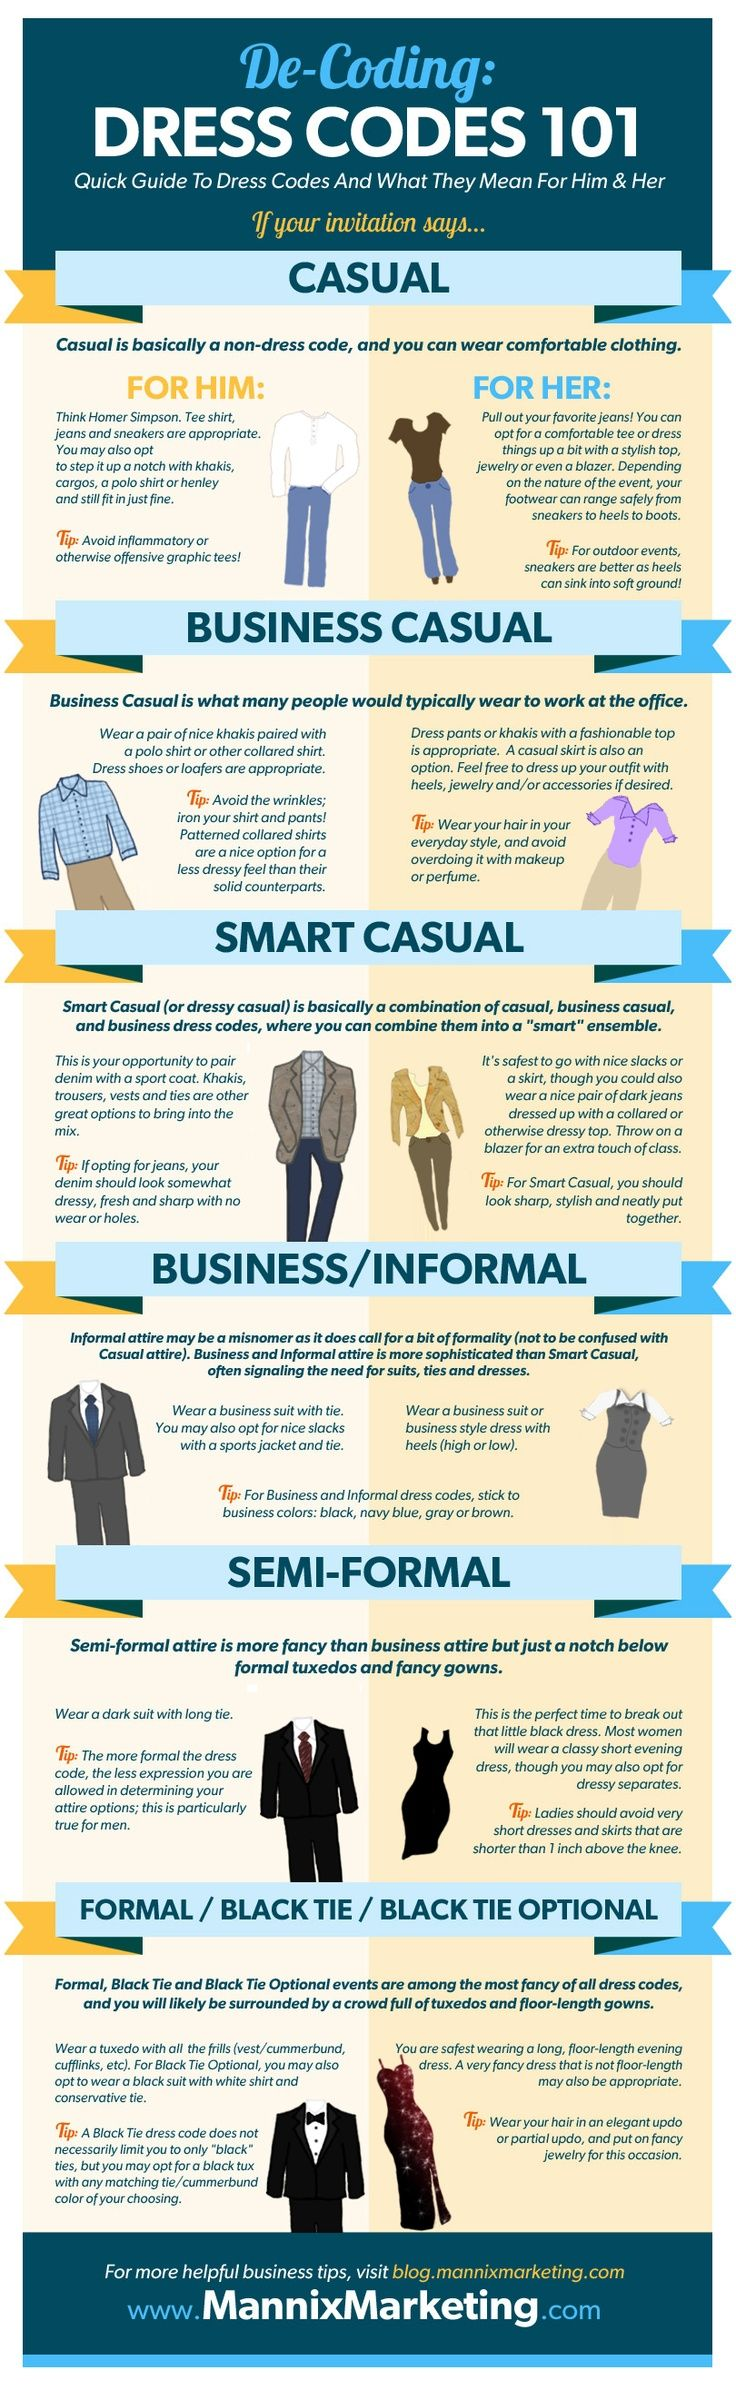 best dress for success ideas dress well quotes  18 helpful diagrams to solve all your clothing woes